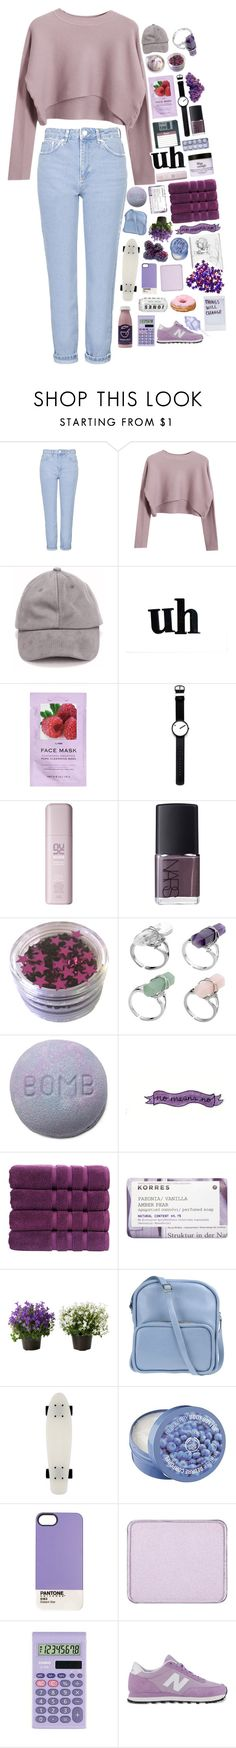 """☆m a y b e t h i n g s w i l l g e t b e t t e r☆"" by amazingavocado ❤ liked on Polyvore featuring Topshop, Chicnova Fashion, WALL, H&M, Rosendahl, NARS Cosmetics, Christy, Korres, Jil Sander Navy and The Body Shop"